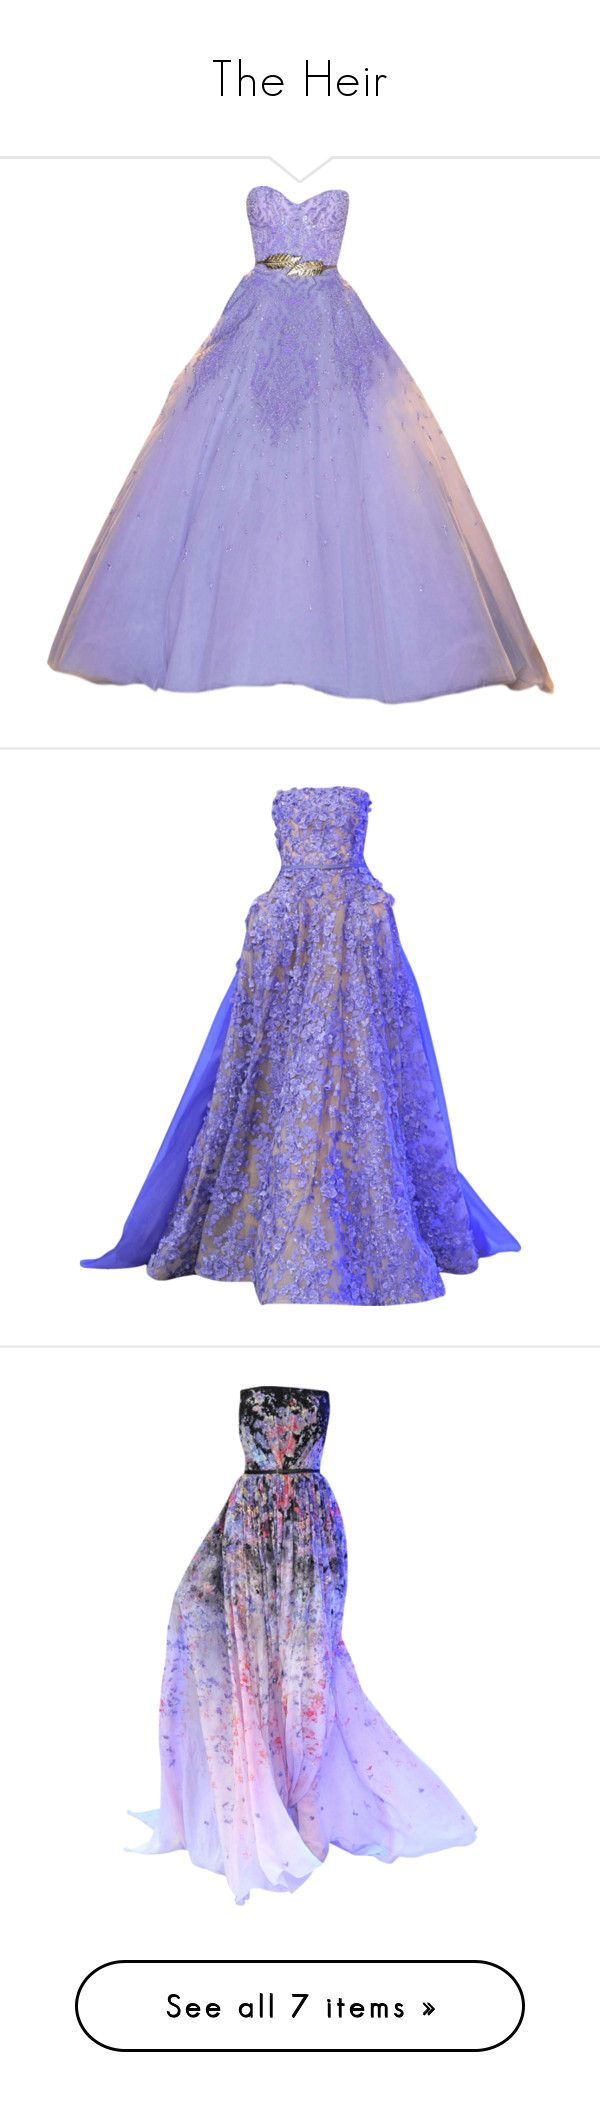 """""""The Heir"""" by lonely-wallflower ❤ liked on Polyvore featuring theheir, theselectionseries, dresses, gowns, long dresses, vestidos, zuhair murad dresses, long tube dress, purple evening gowns and purple gown"""